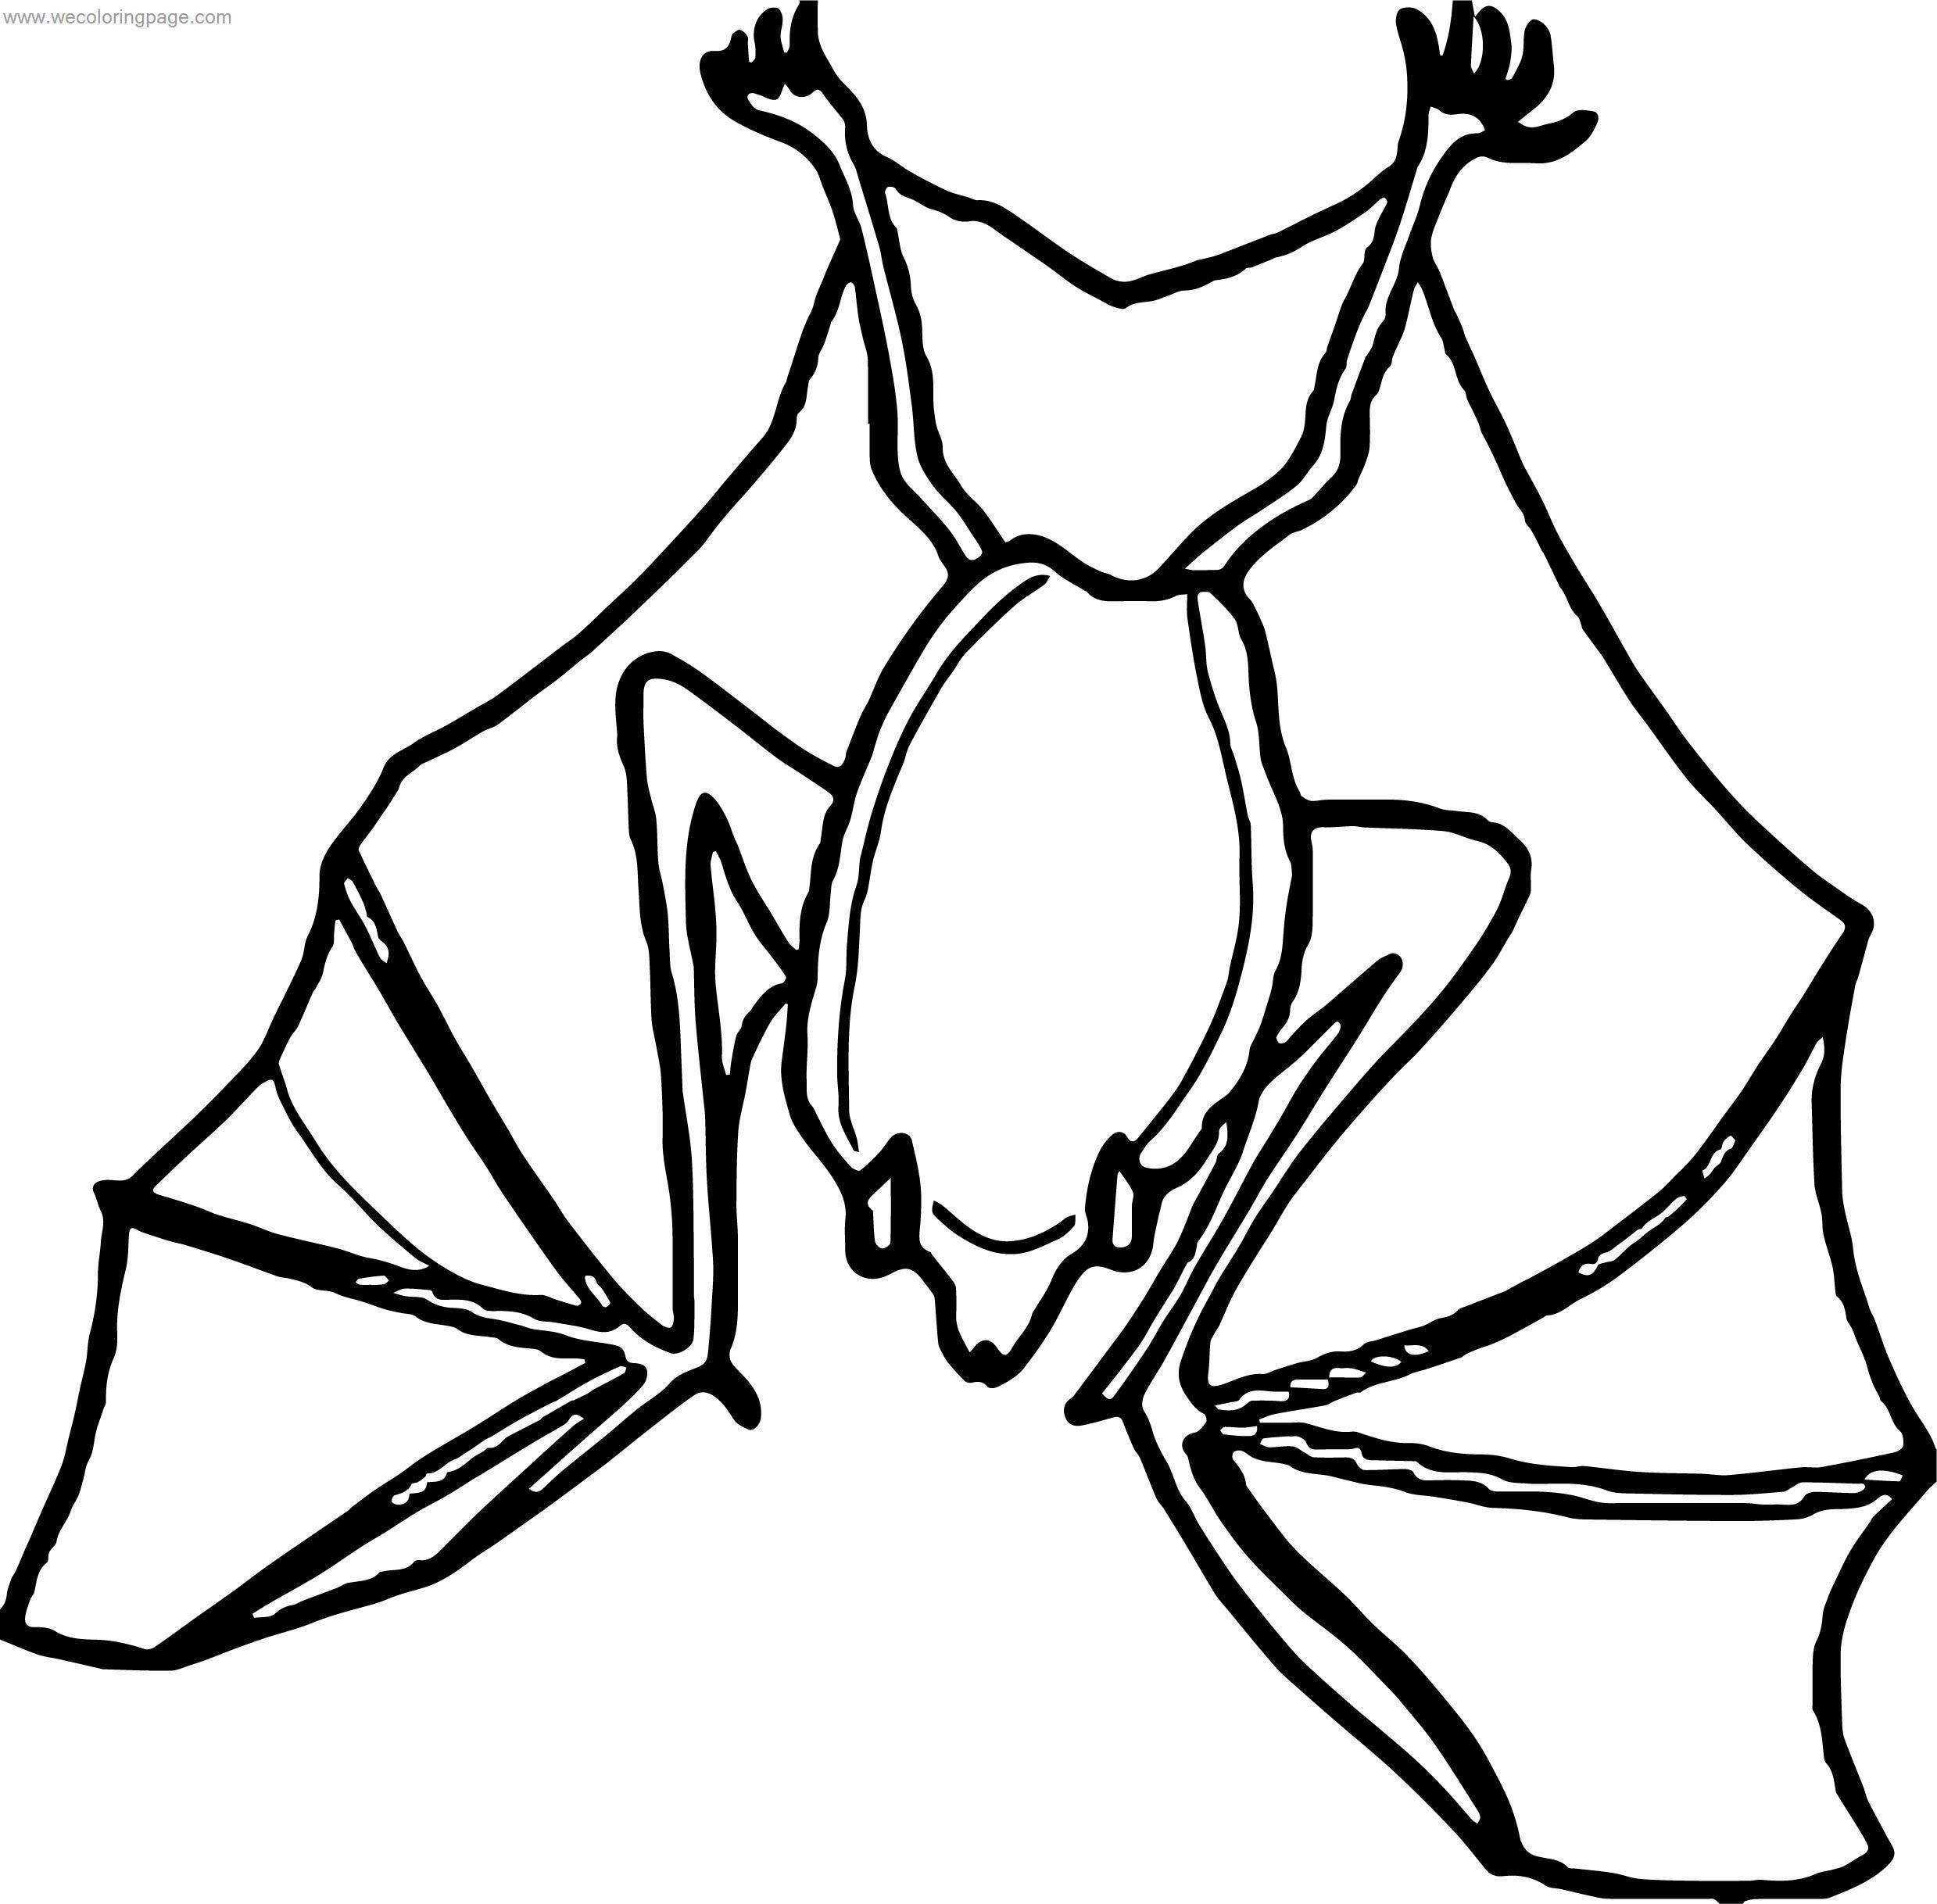 Well Bat Coloring Page